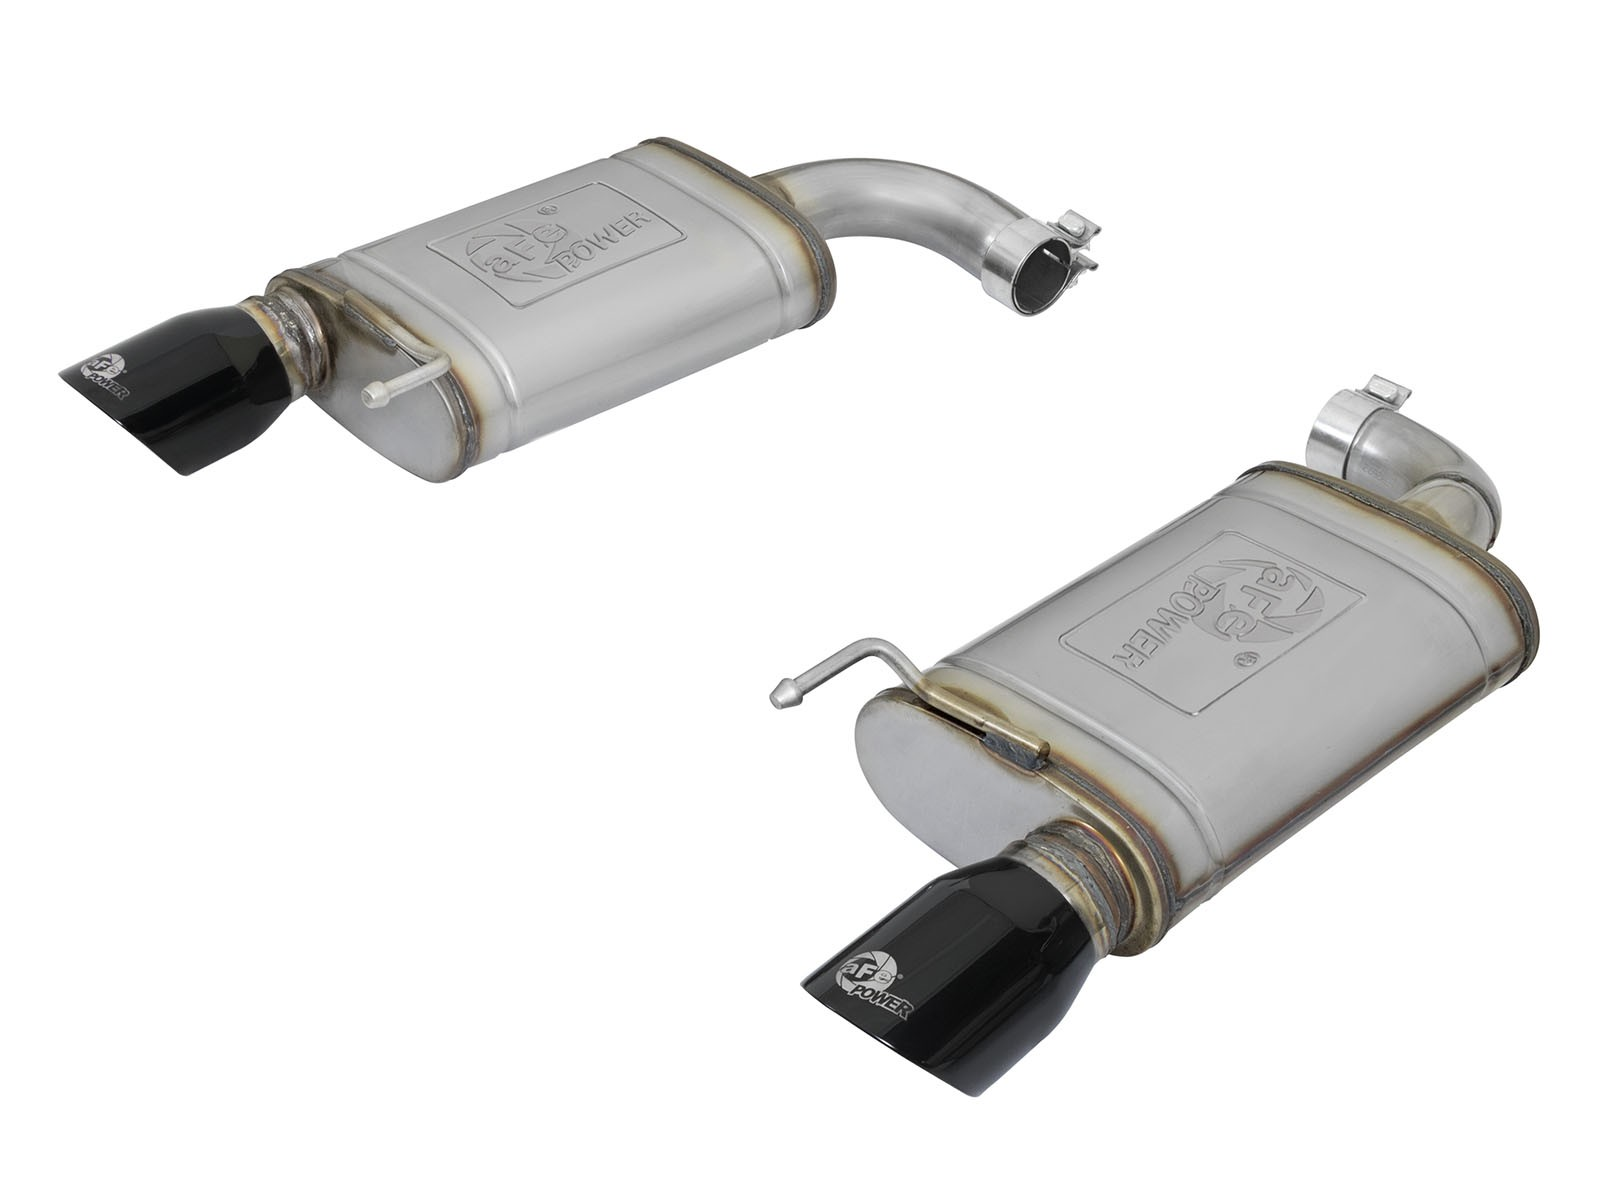 """aFe POWER 49-43085-B MACH Force-Xp 2-1/2"""" 409 Stainless Steel Axle-Back Exhaust System"""